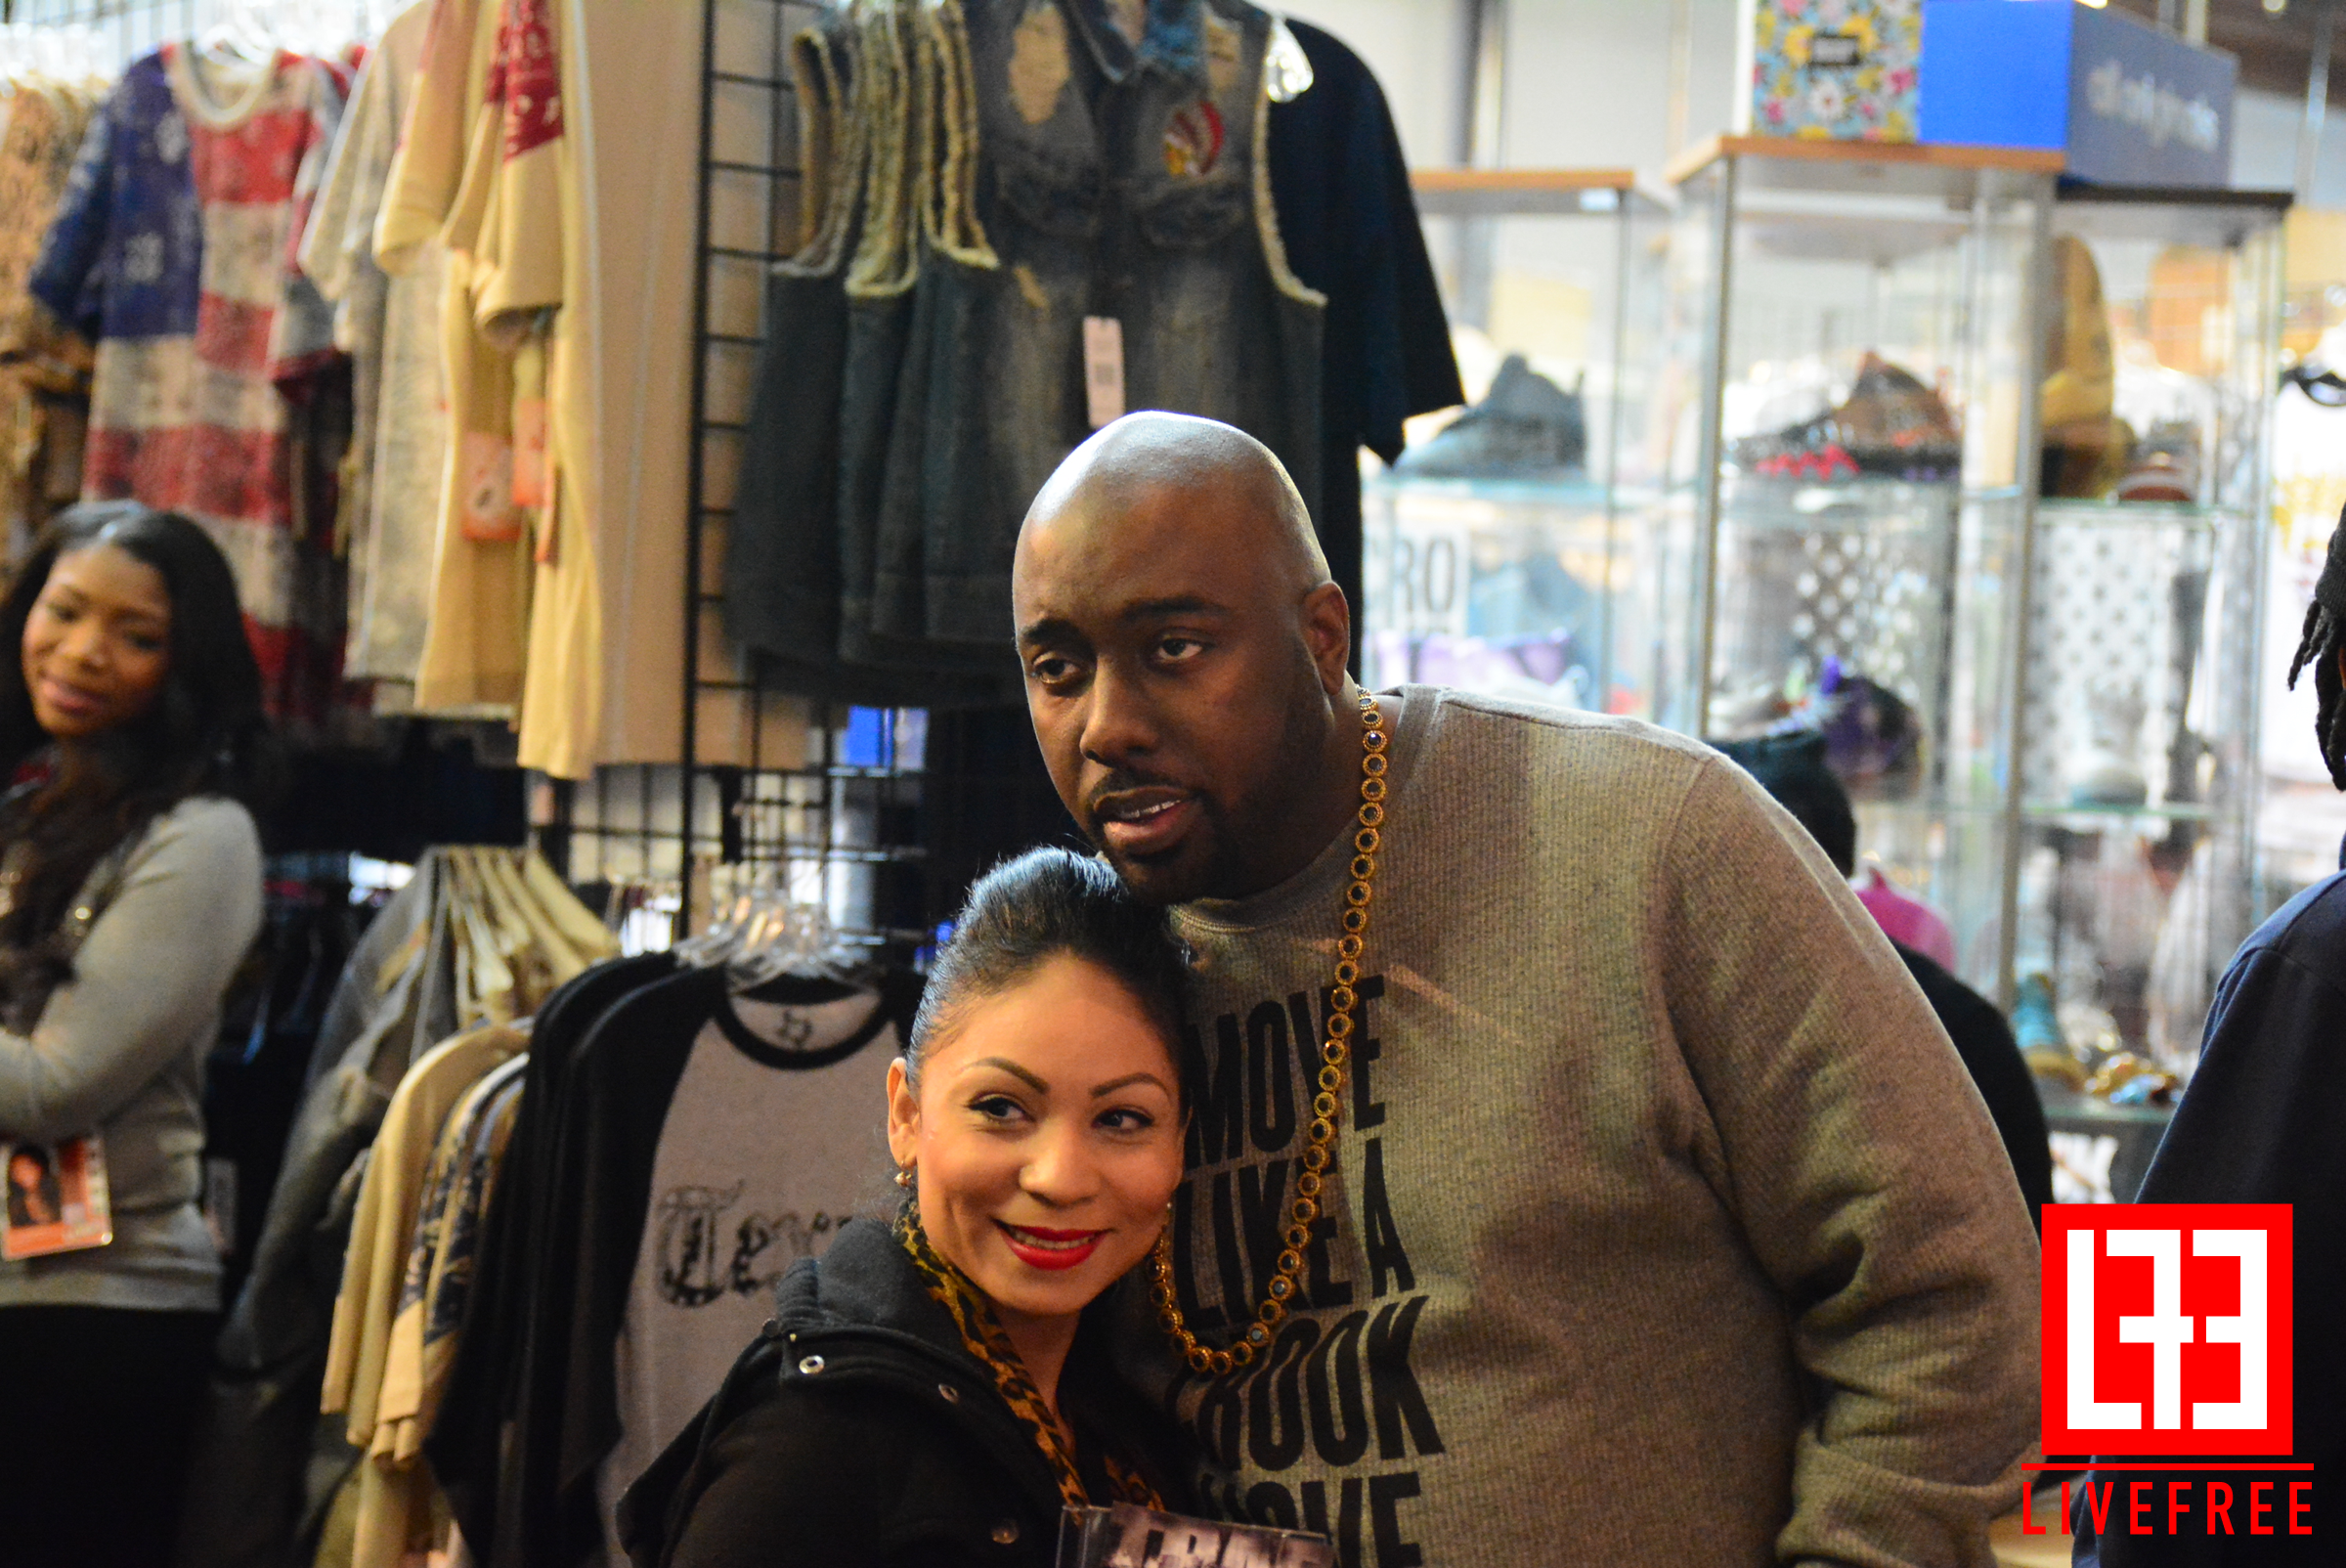 Trae Tha Truth Meet And Greet Lfe Livefree Apparel